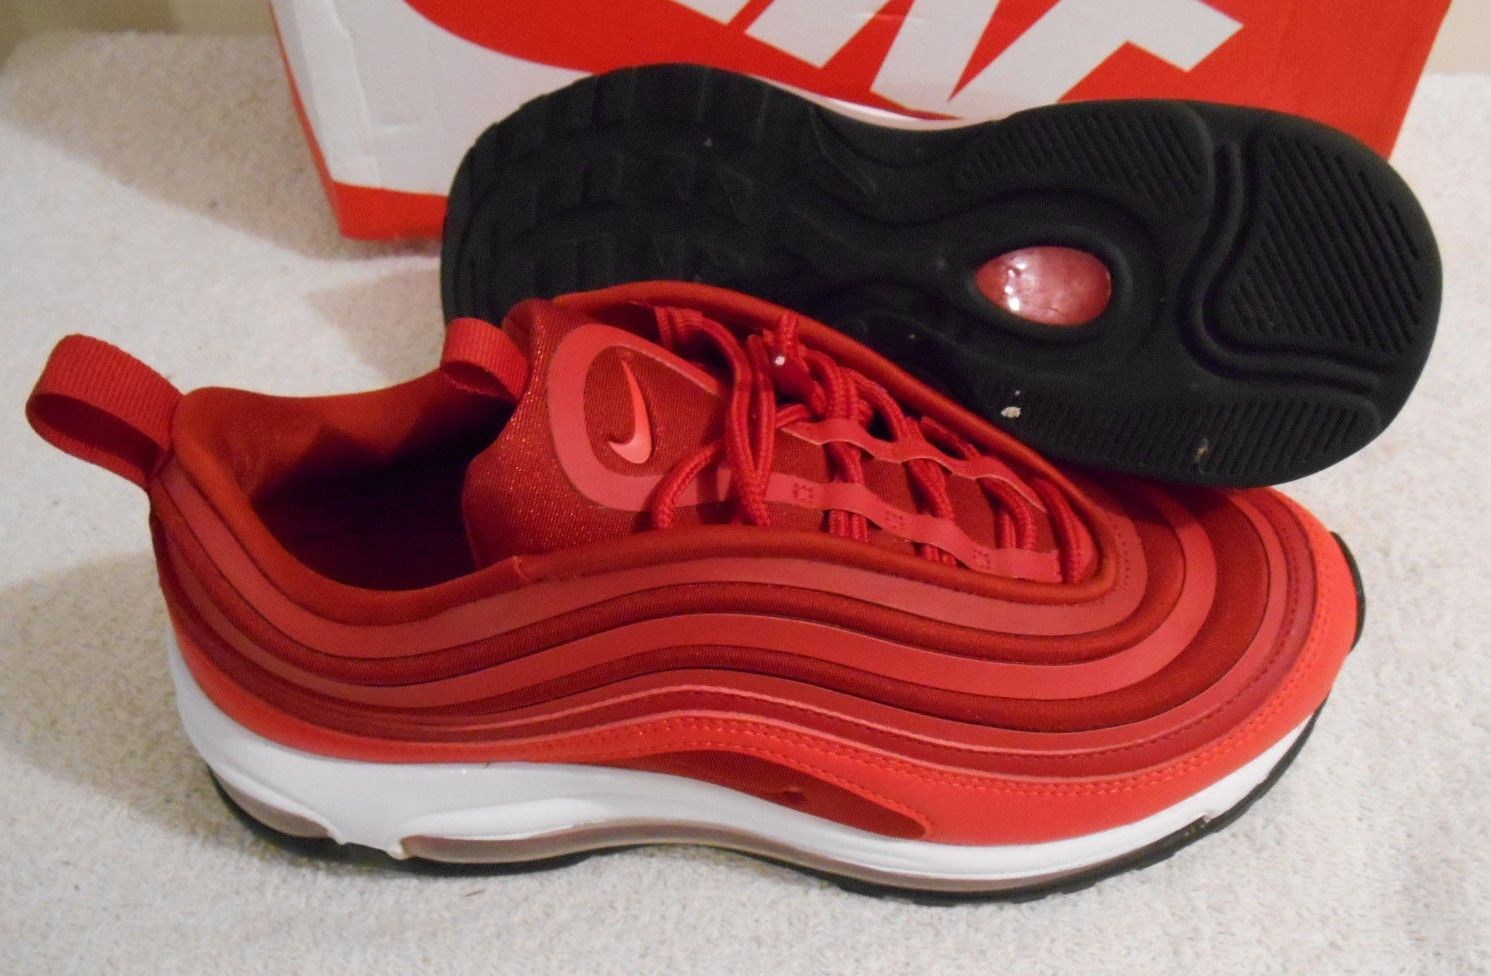 1a8bafec01 Women's Nike Air Max 97 Ultra '17 Gym Red Black Valentines Day Size 7  917704 601